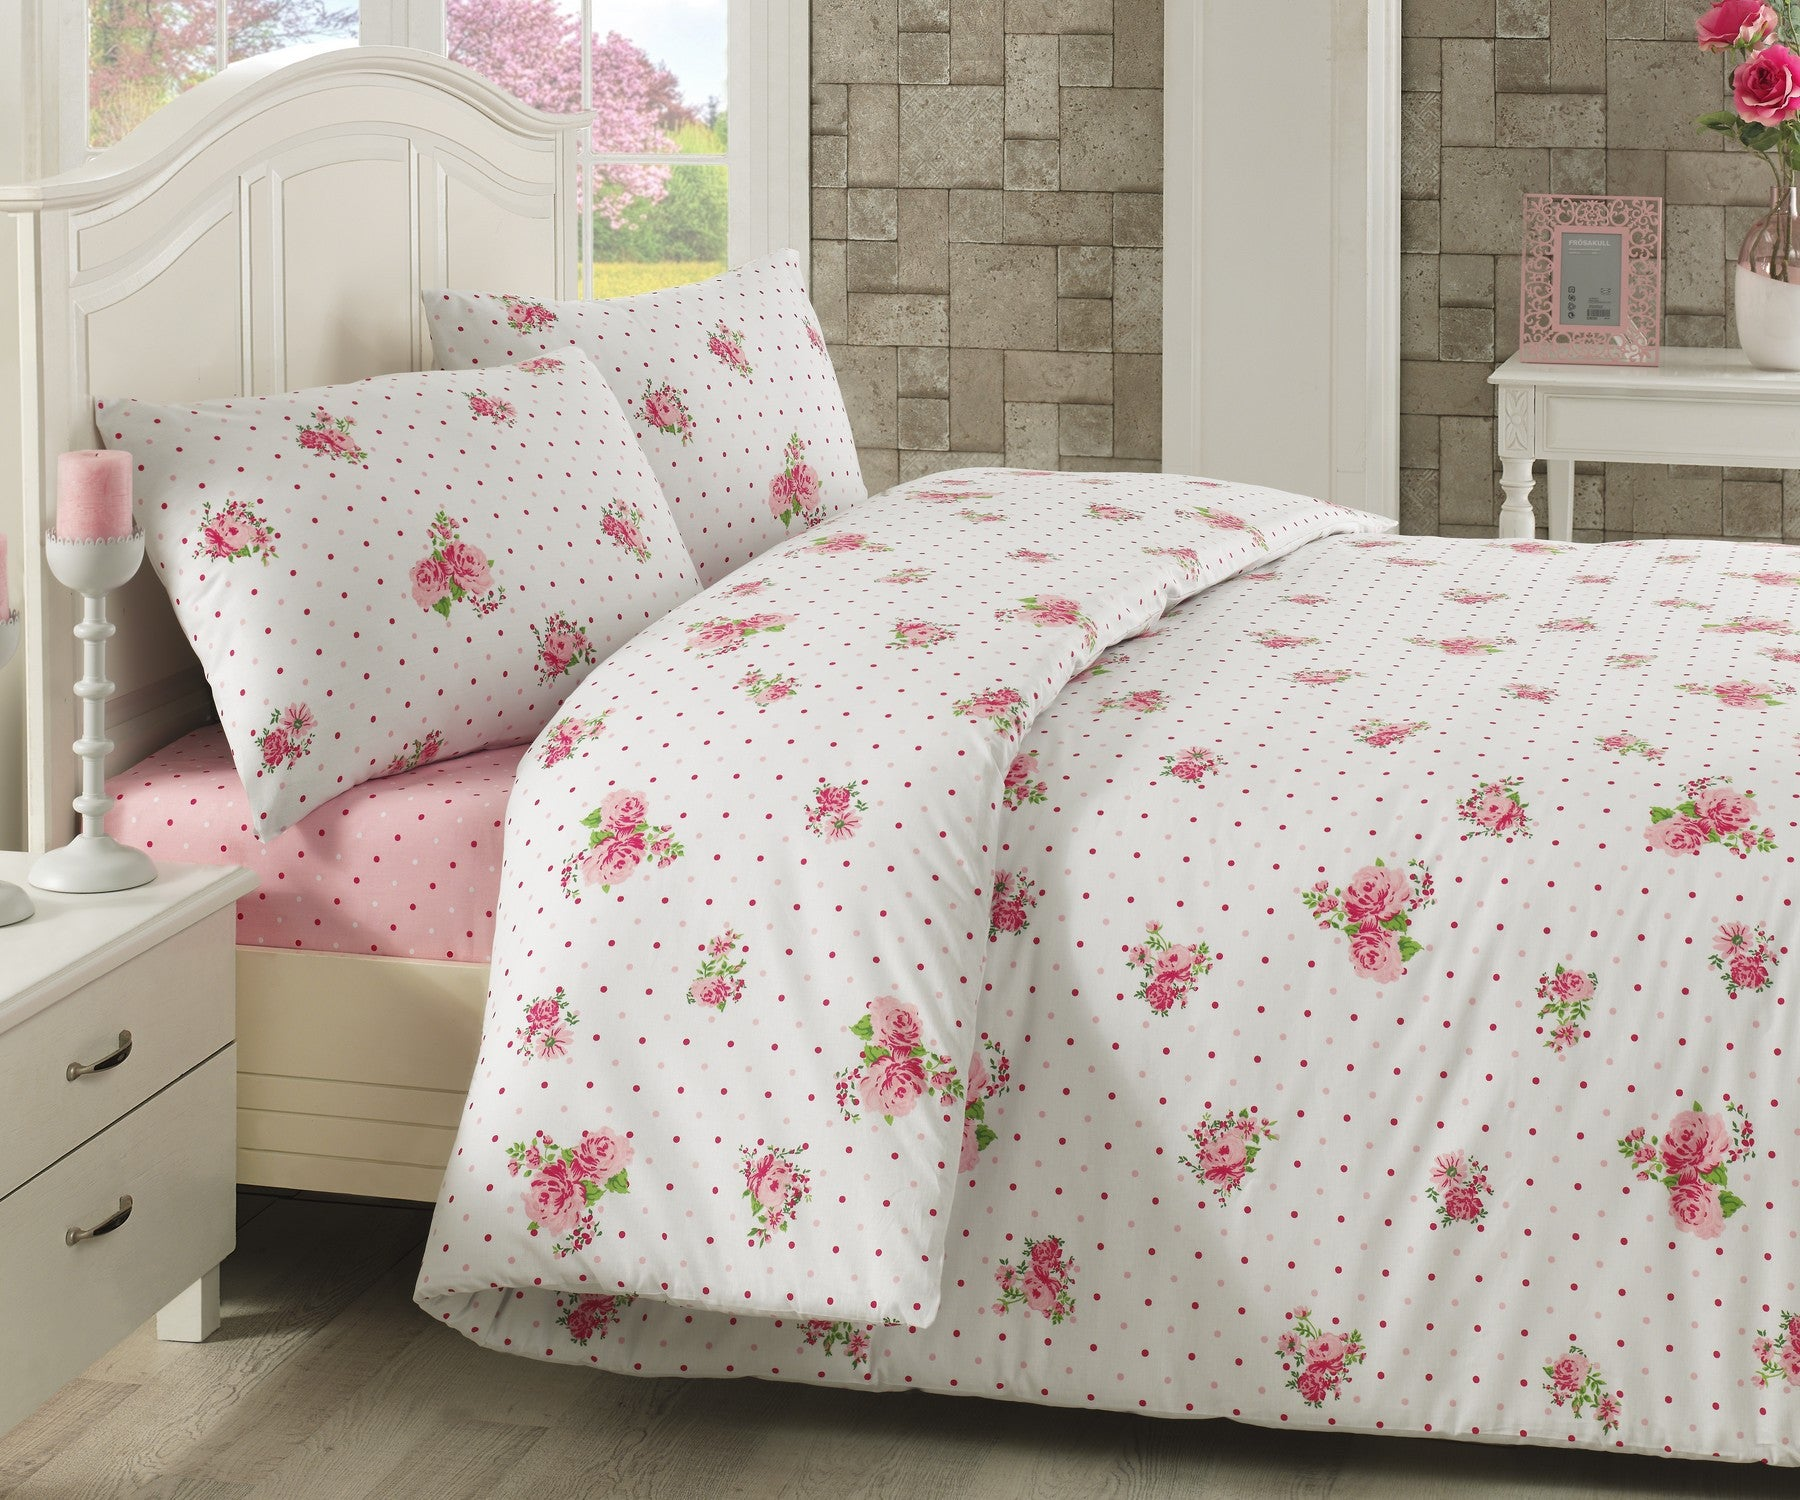 florina bettw sche 160 220 pink and more. Black Bedroom Furniture Sets. Home Design Ideas